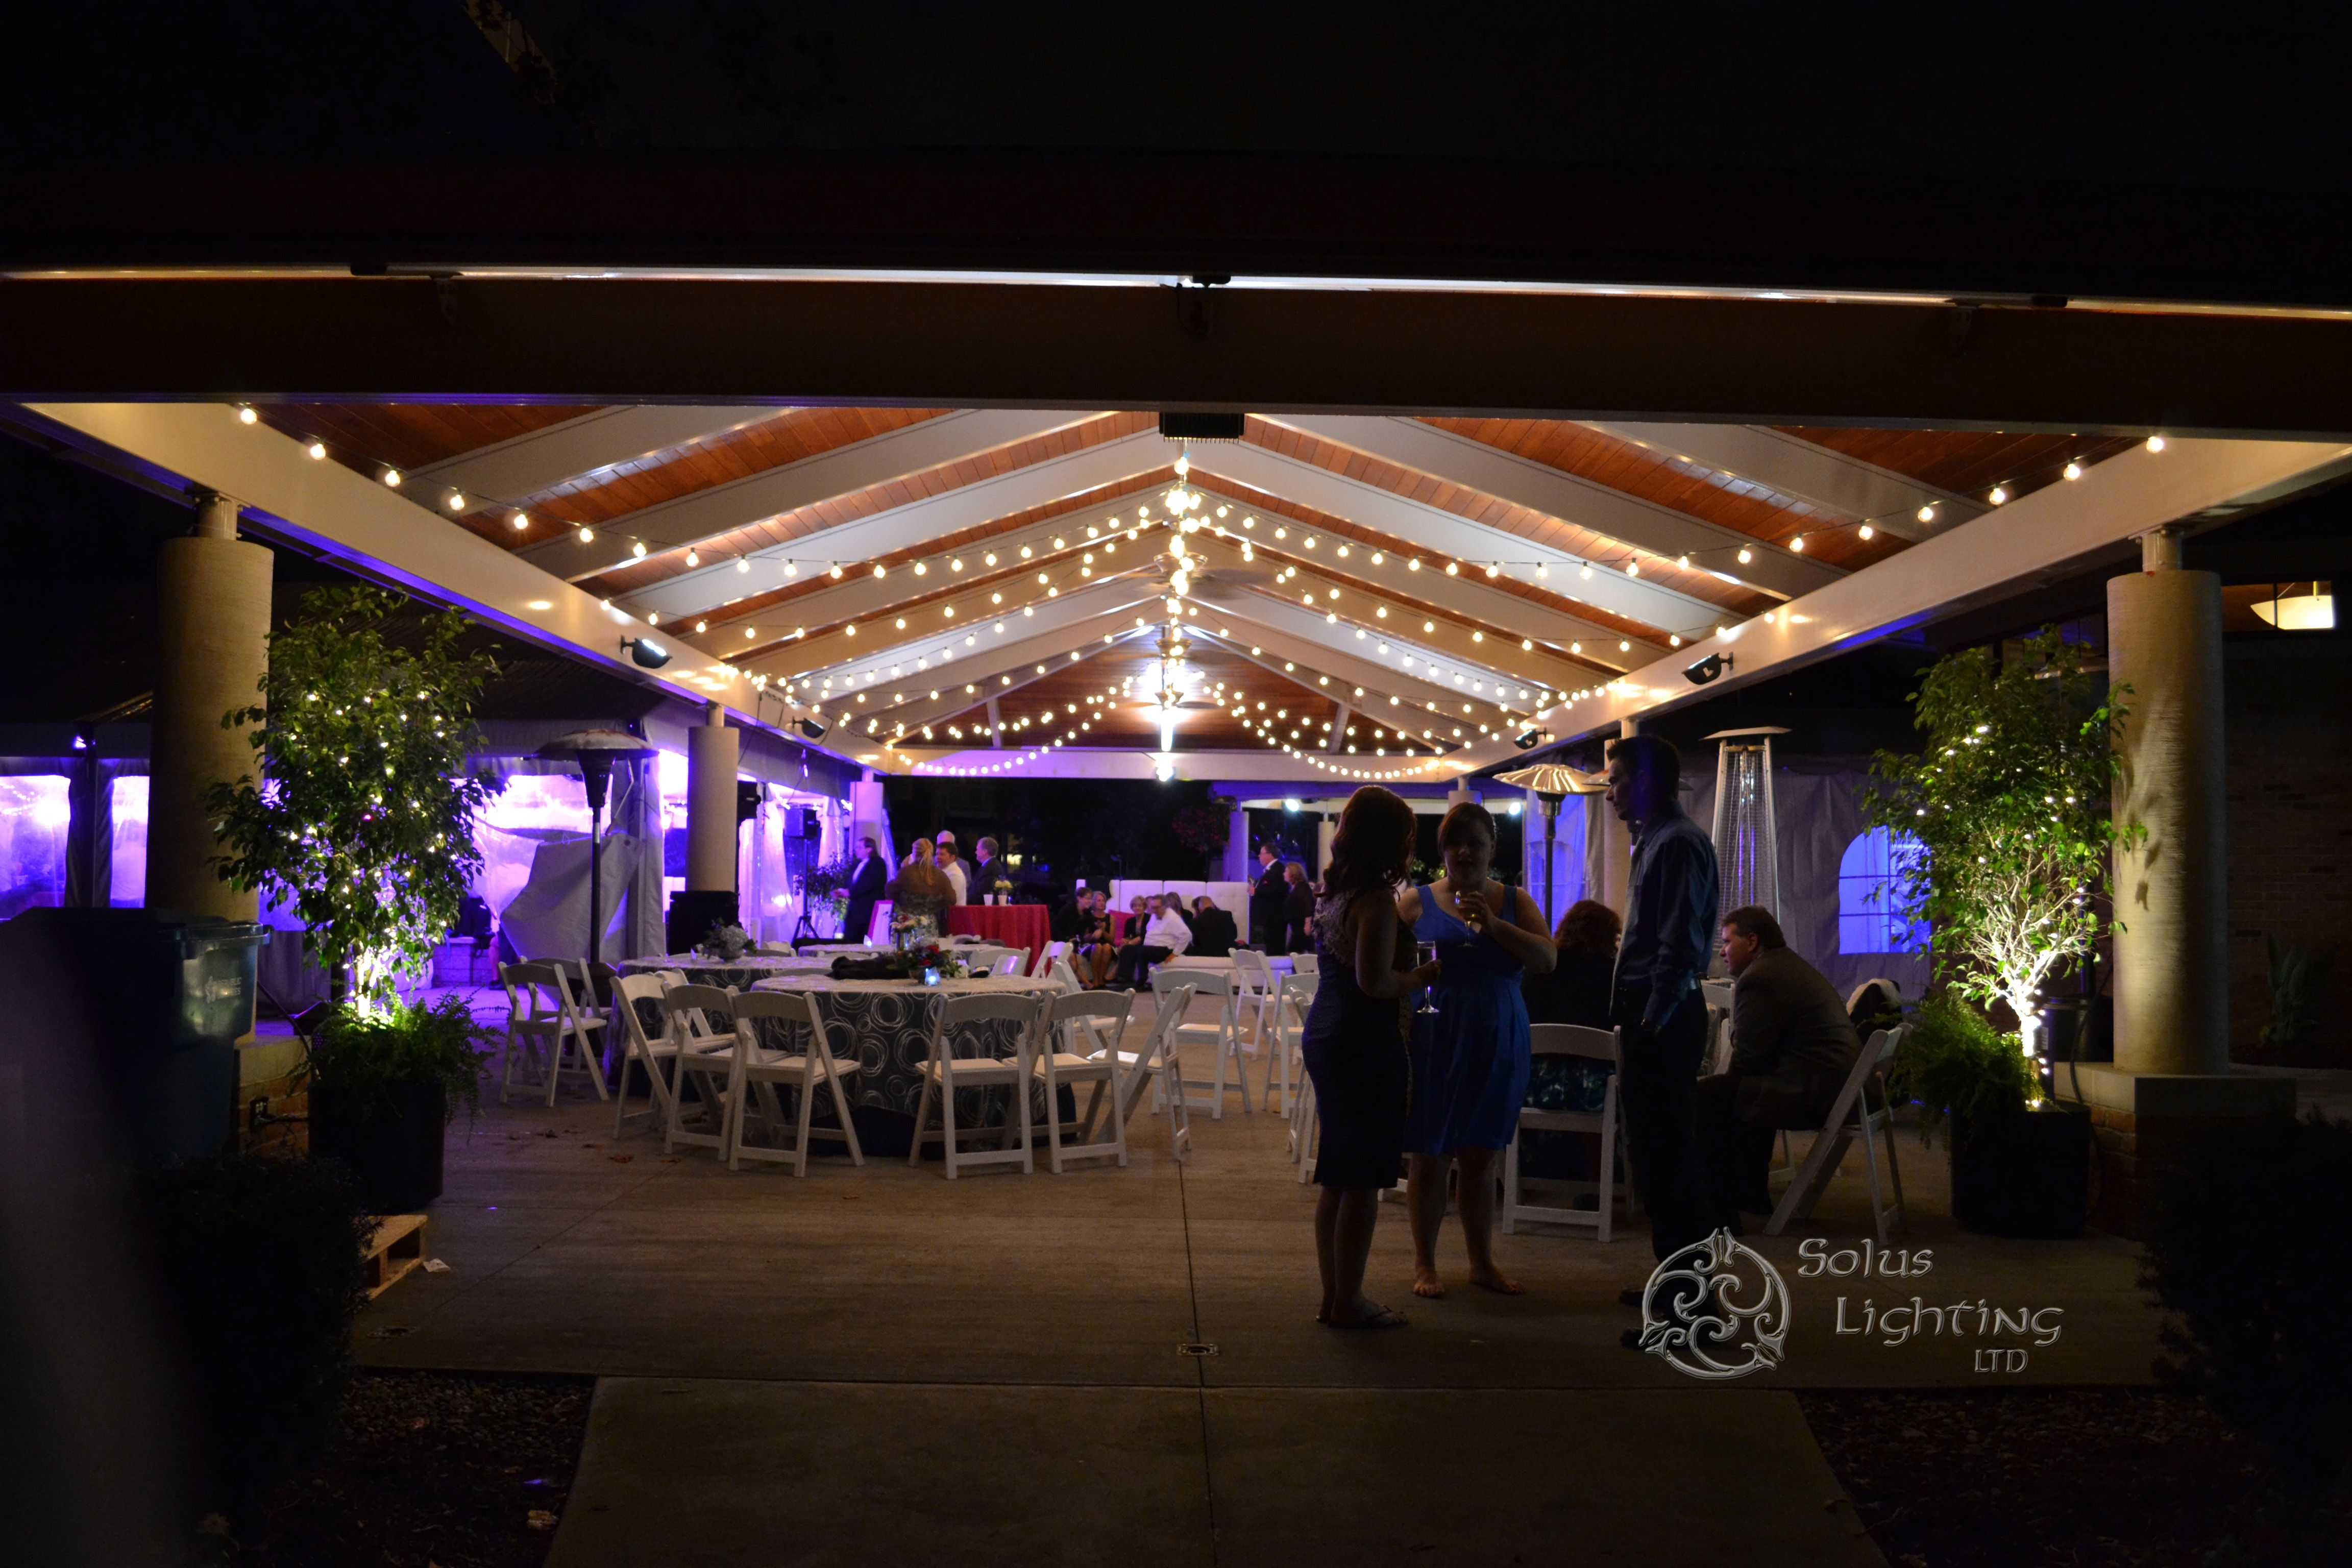 String lighting in a pavilion with LED tent lighting for a wedding in Cleveland Ohio & String lighting in a pavilion with LED tent lighting for a wedding ... azcodes.com